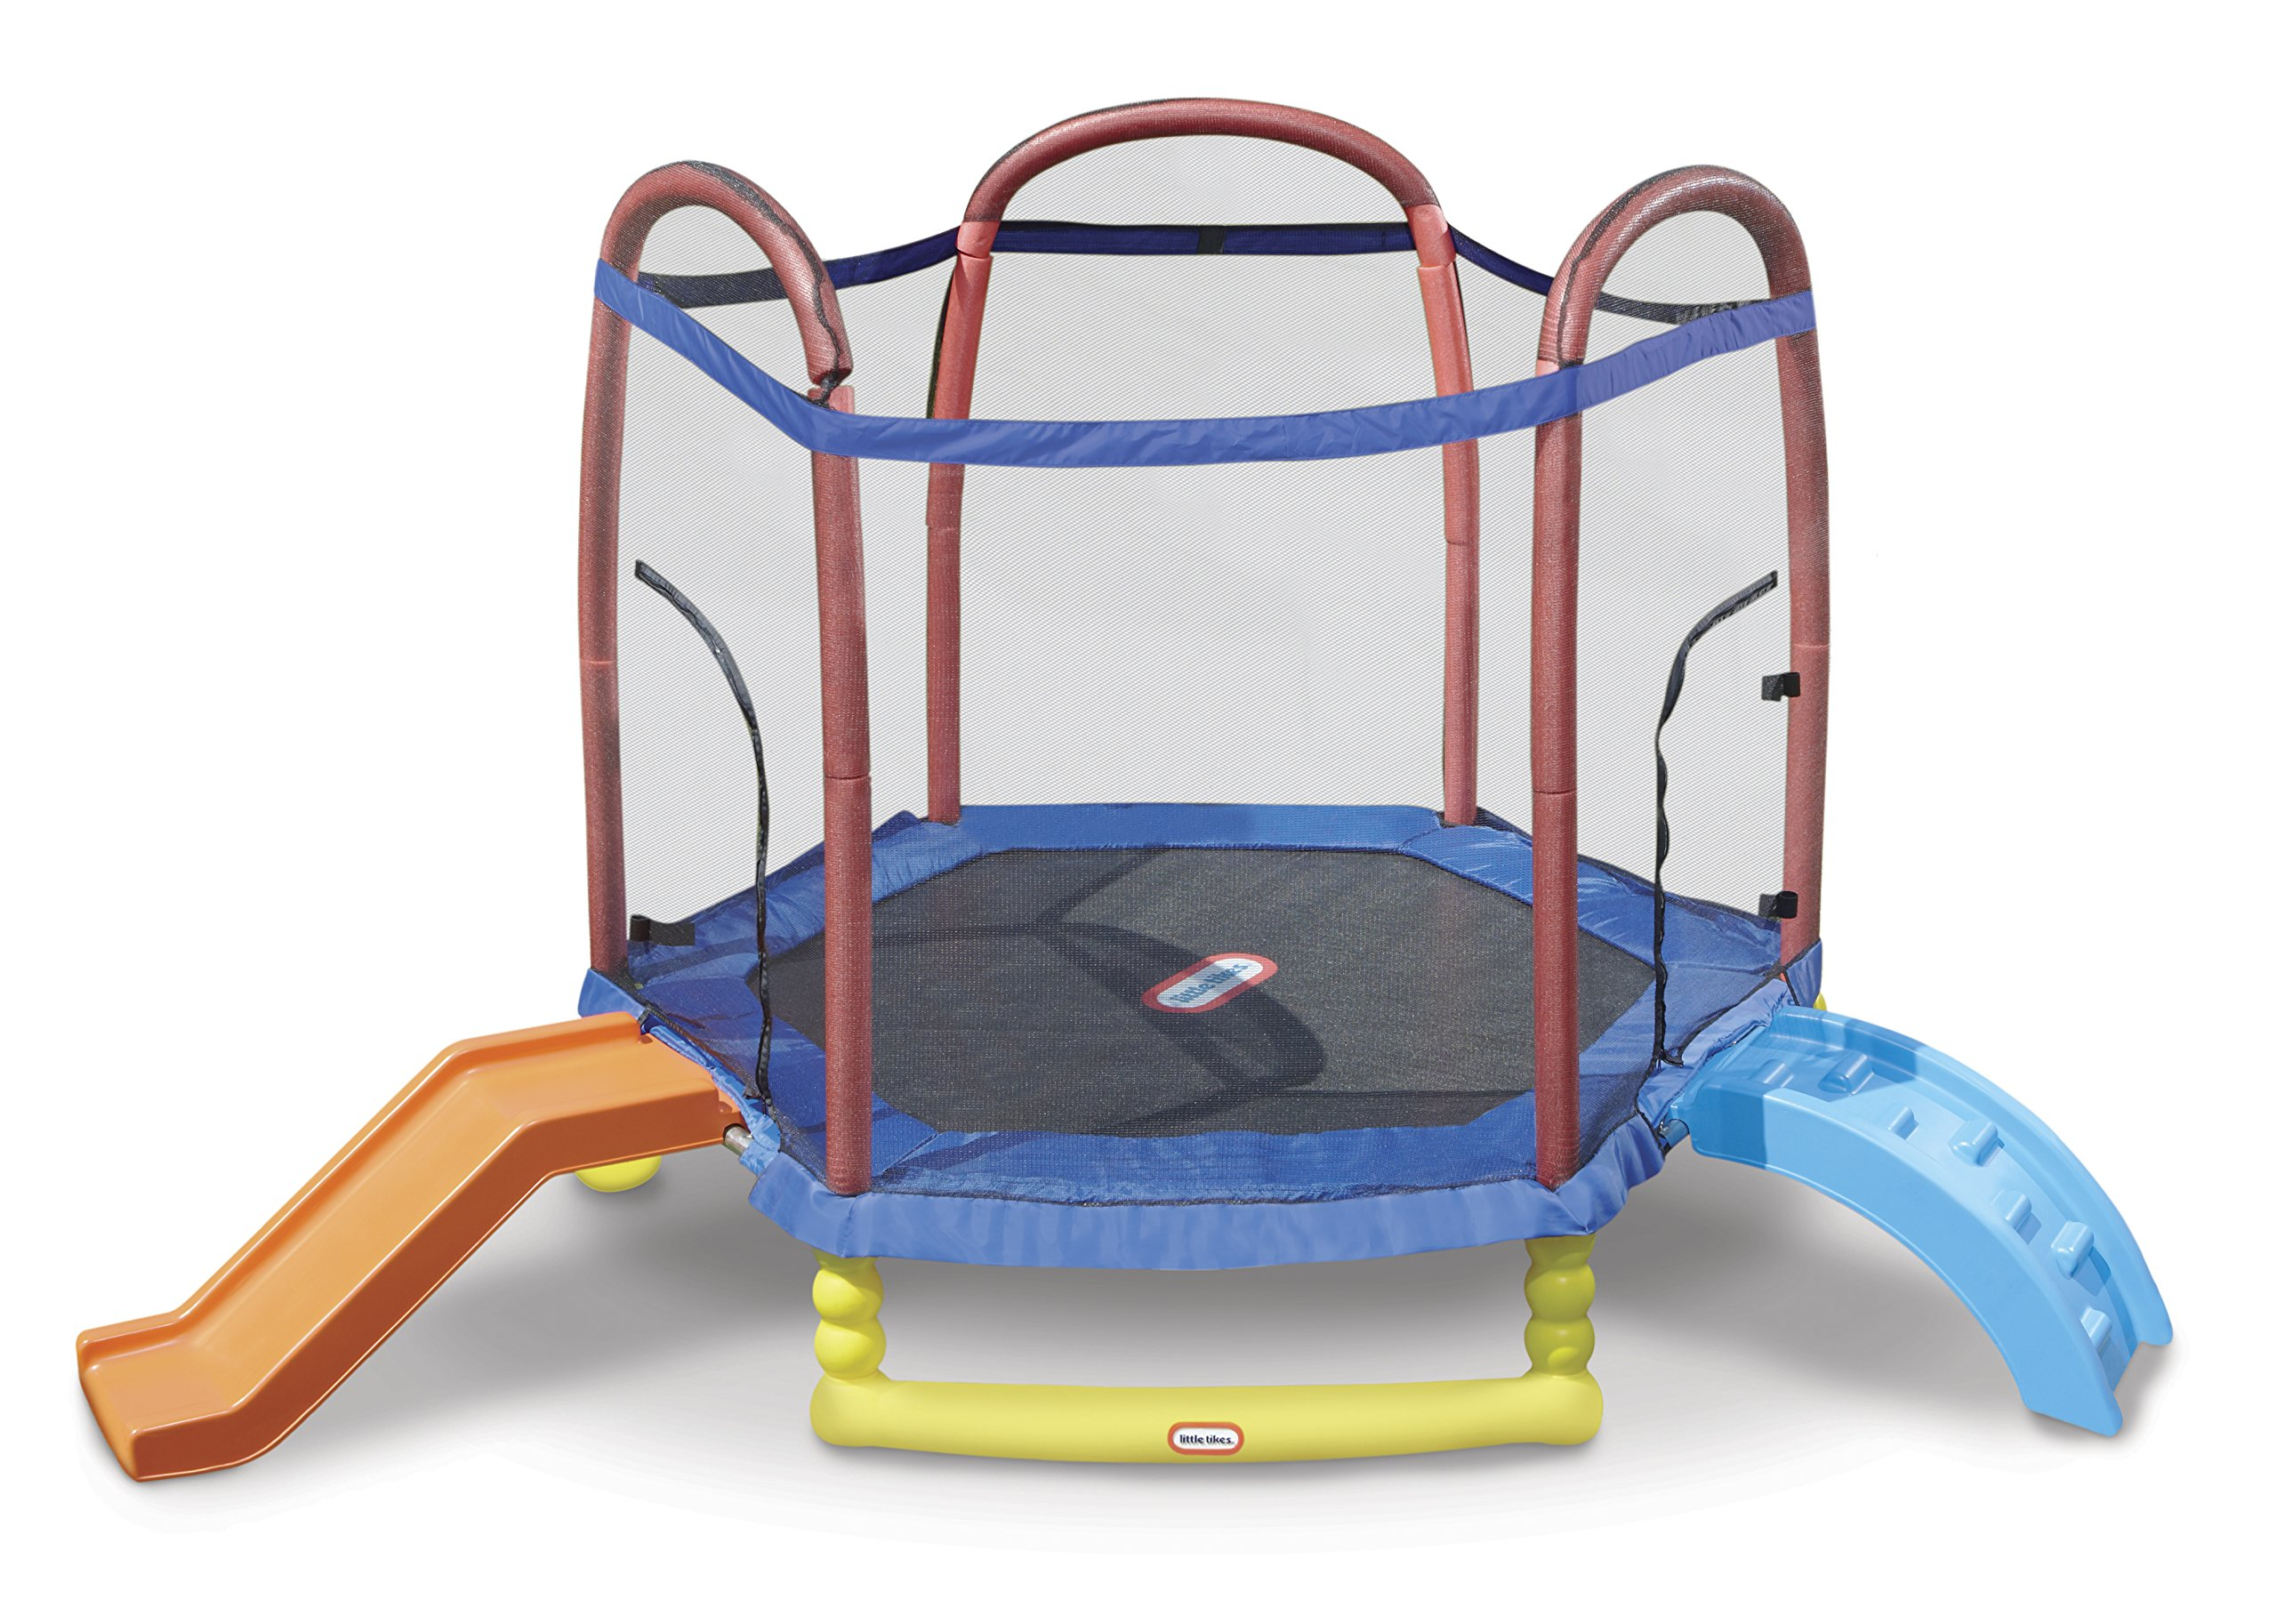 Little Tikes 7' Climb 'N Slide Trampoline by Little Tikes